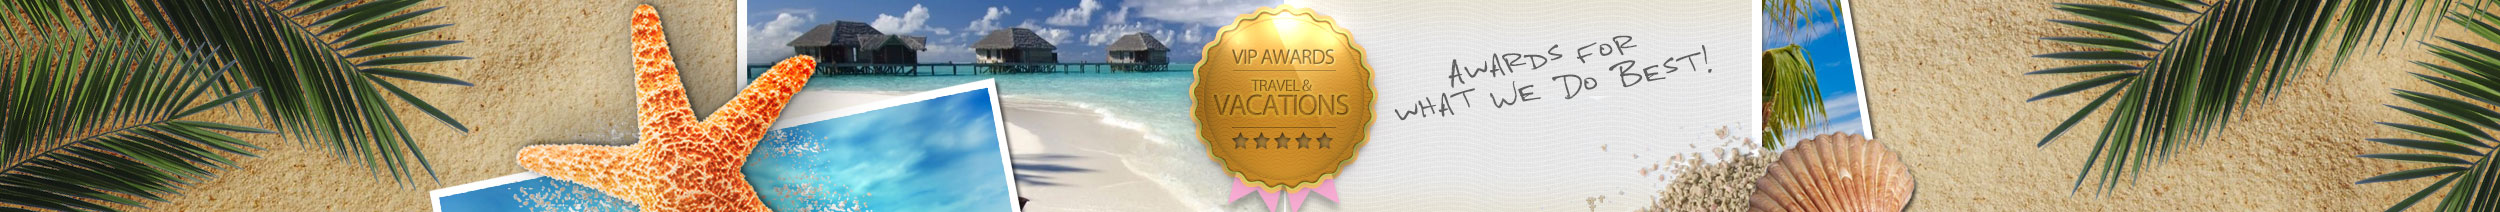 VIP Vacations Presented with Sandals/Beaches Awards